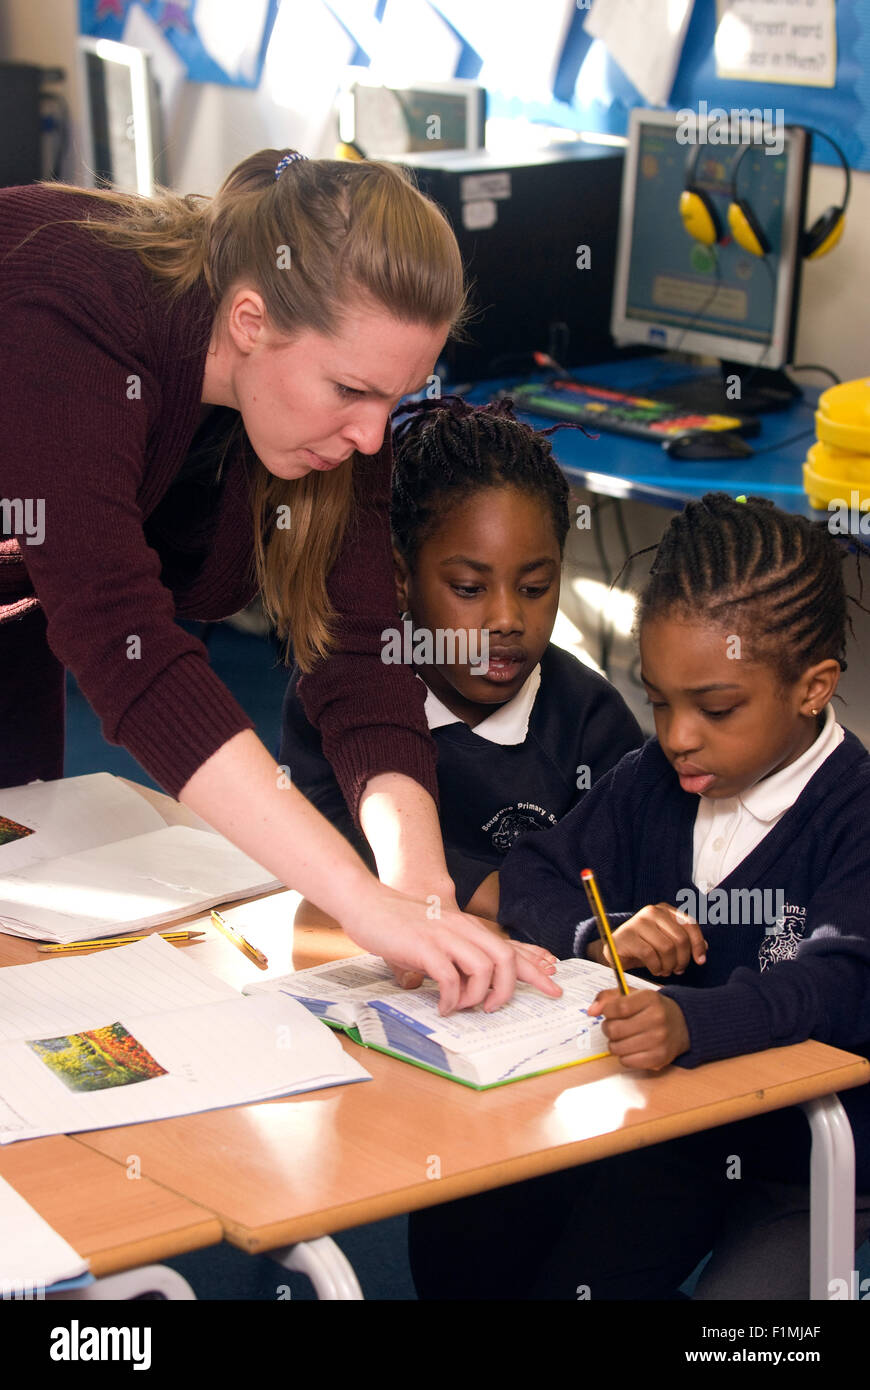 Female primary school teacher assisting pupil's in classroom, London, UK. - Stock Image